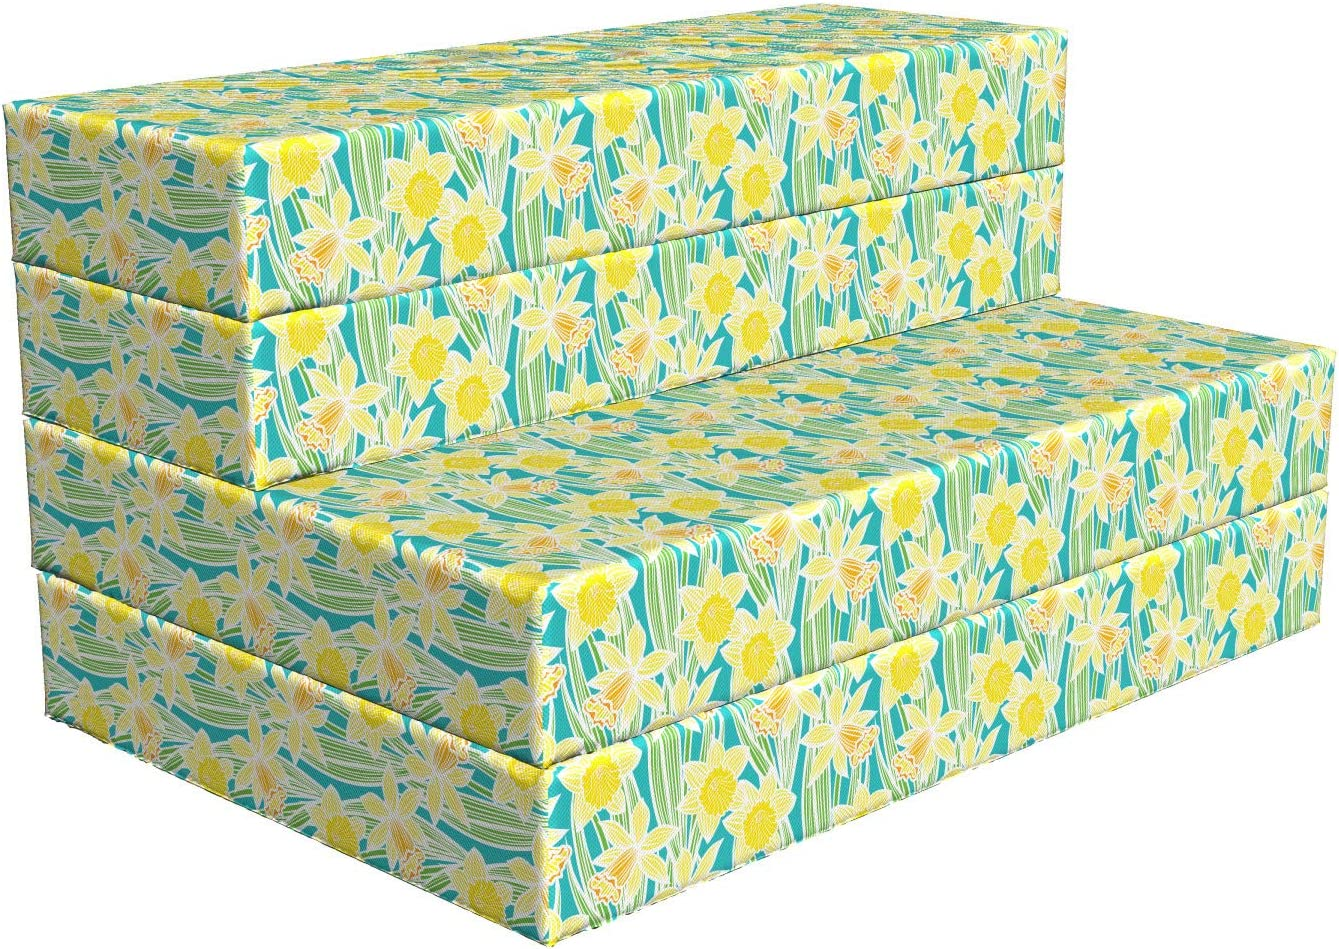 Import Lunarable Floral Foldable Mattress Foliage Trust Daffodils Blooming